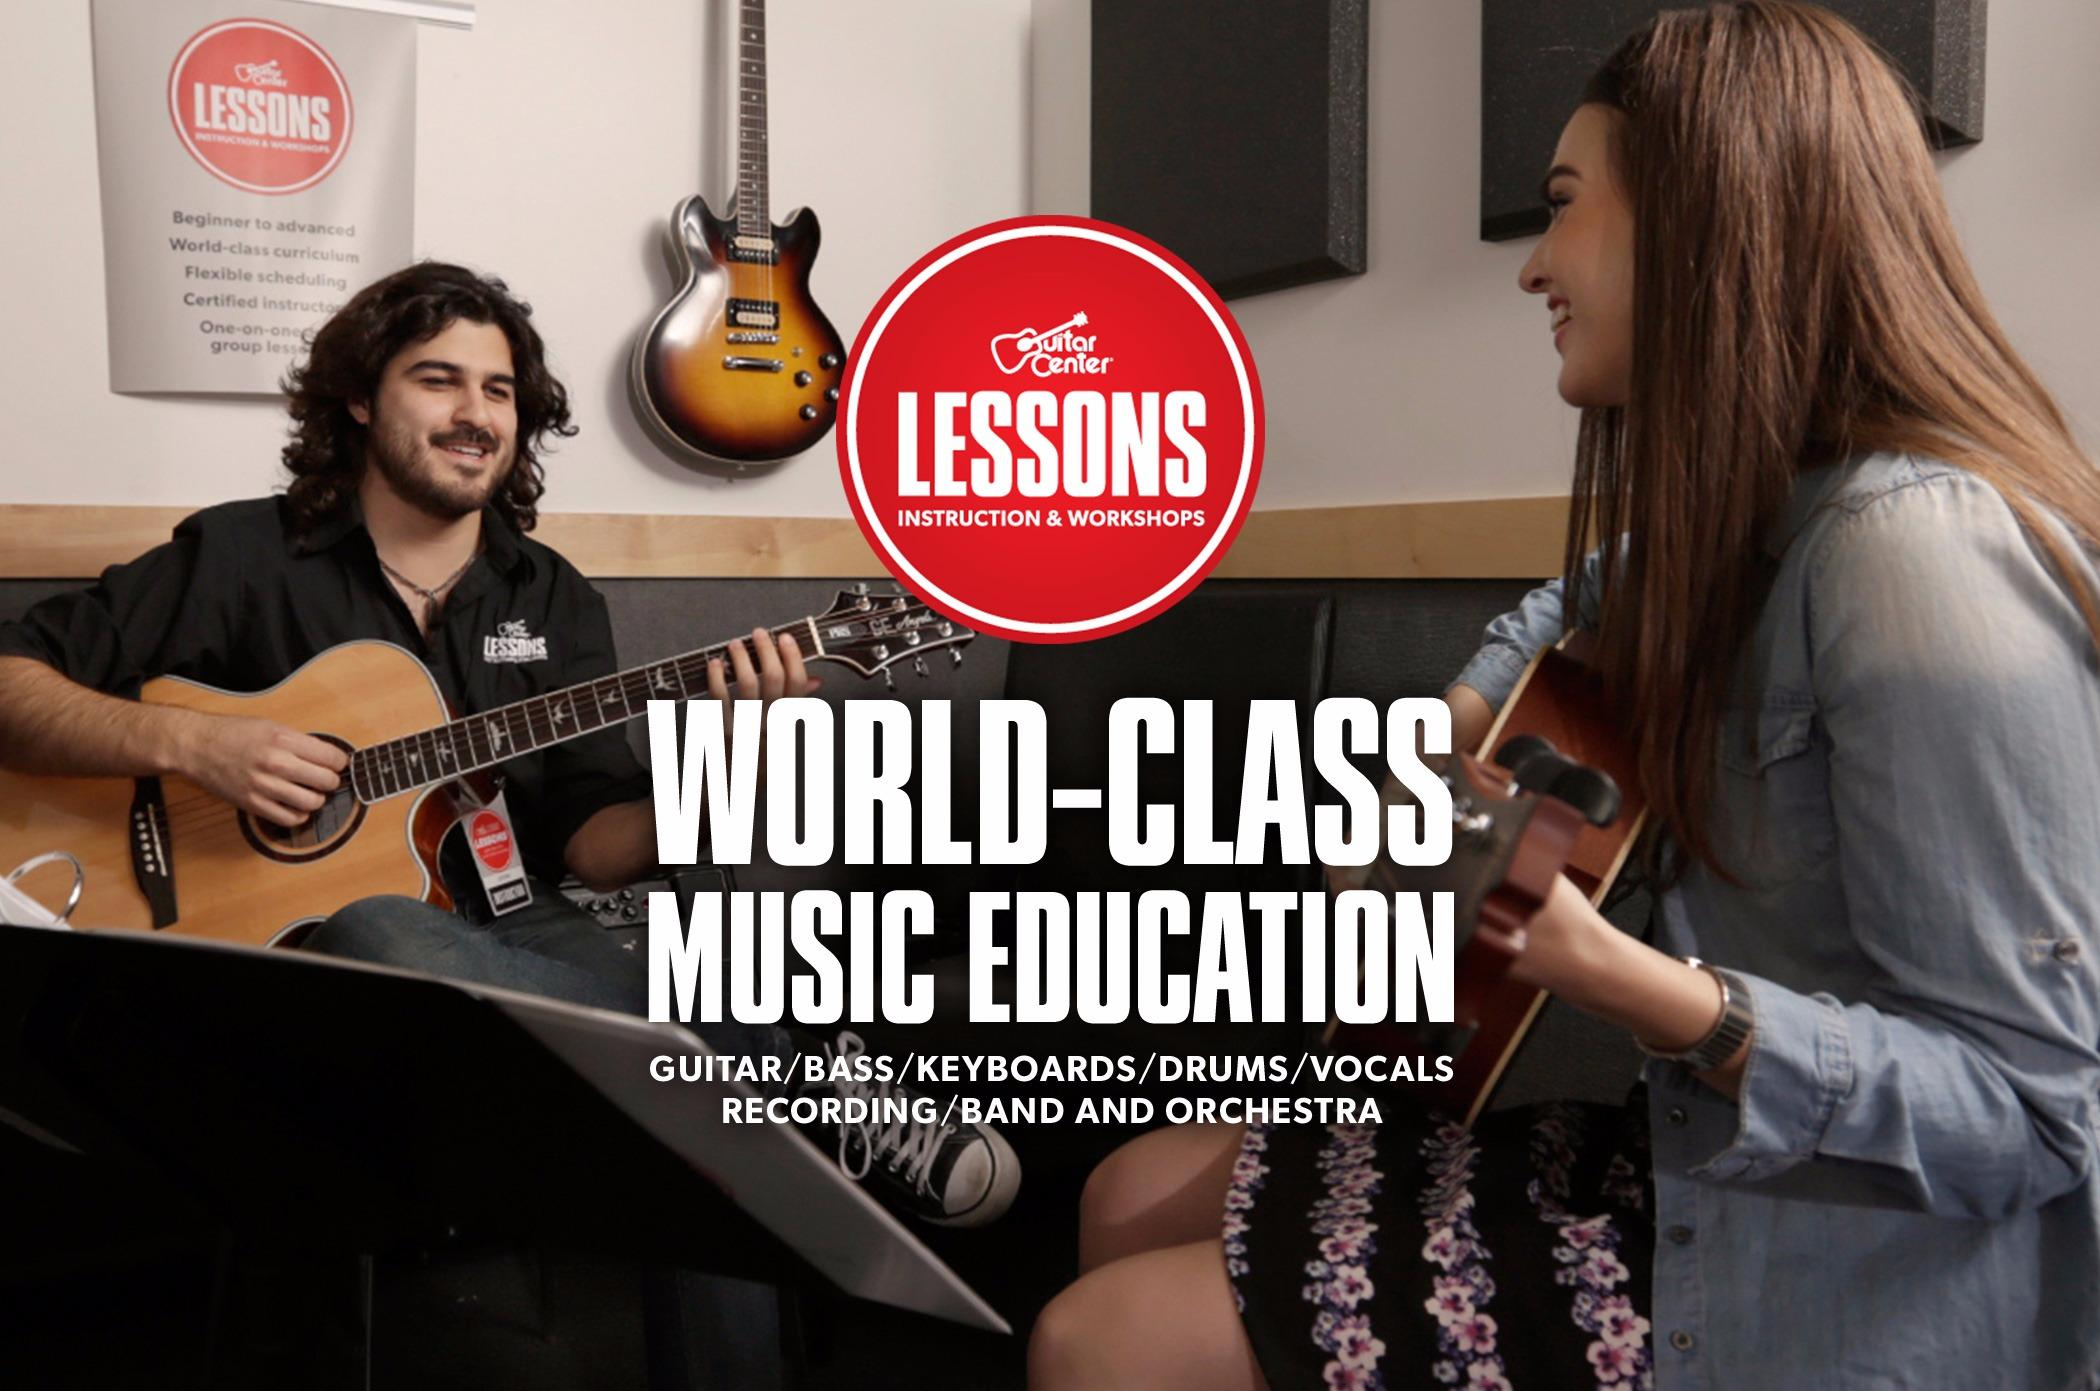 Learn how to play guitar with the best free online guitar lessons available. For 11,+ Video Lessons· + Song Lessons· 24 Free Lessons· Easy Step-By-Step SystemStyles: Jazz, Blues, Country.